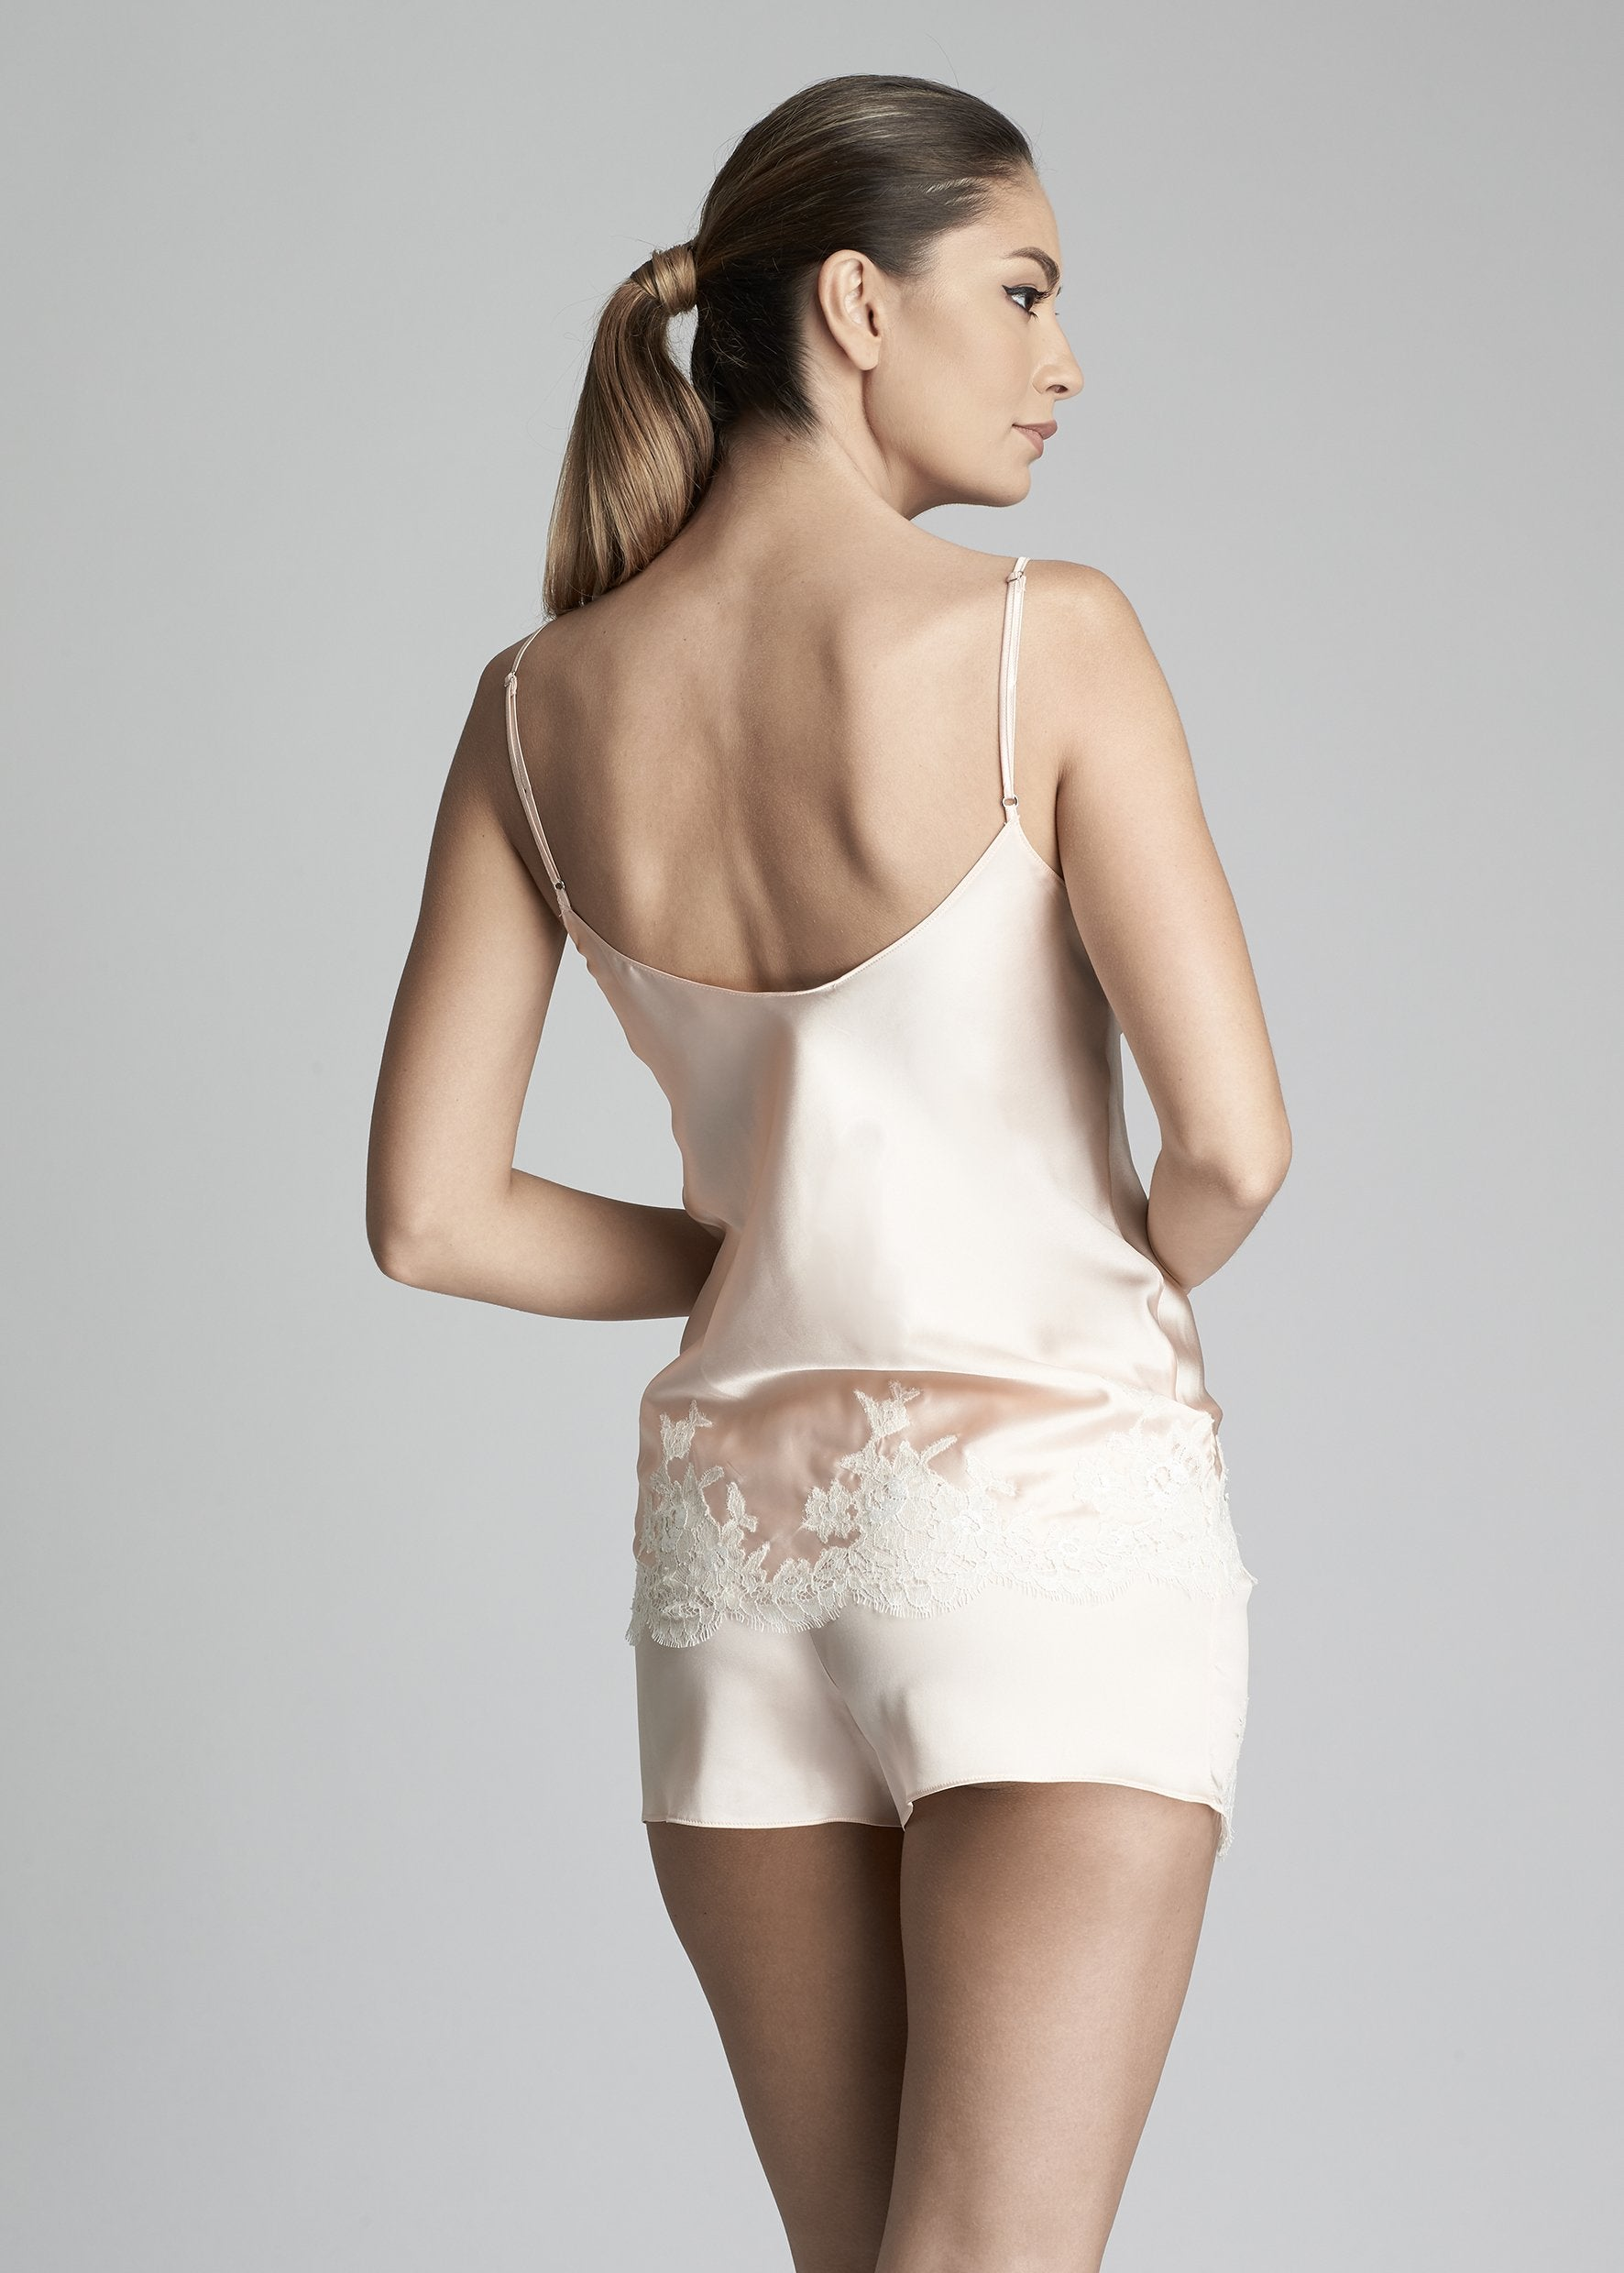 Hôtel Particulier Shorts in Peach Rose